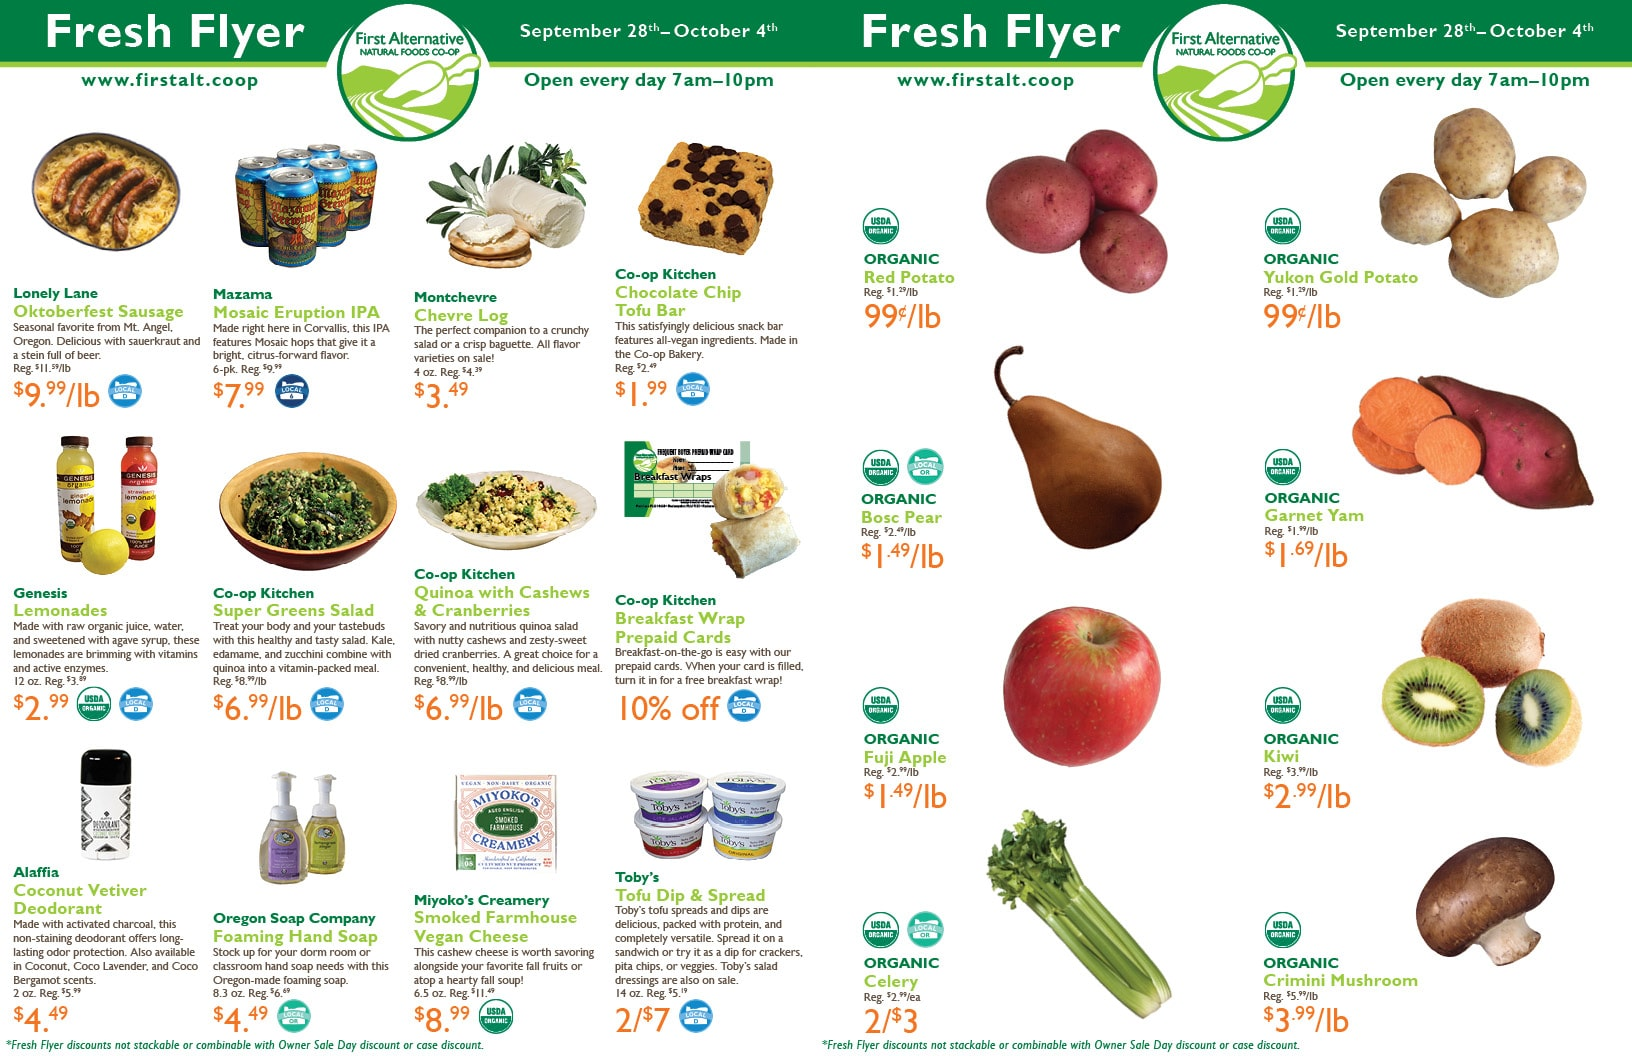 First Alternative Co-op Fresh Flyer September 28 - October 4